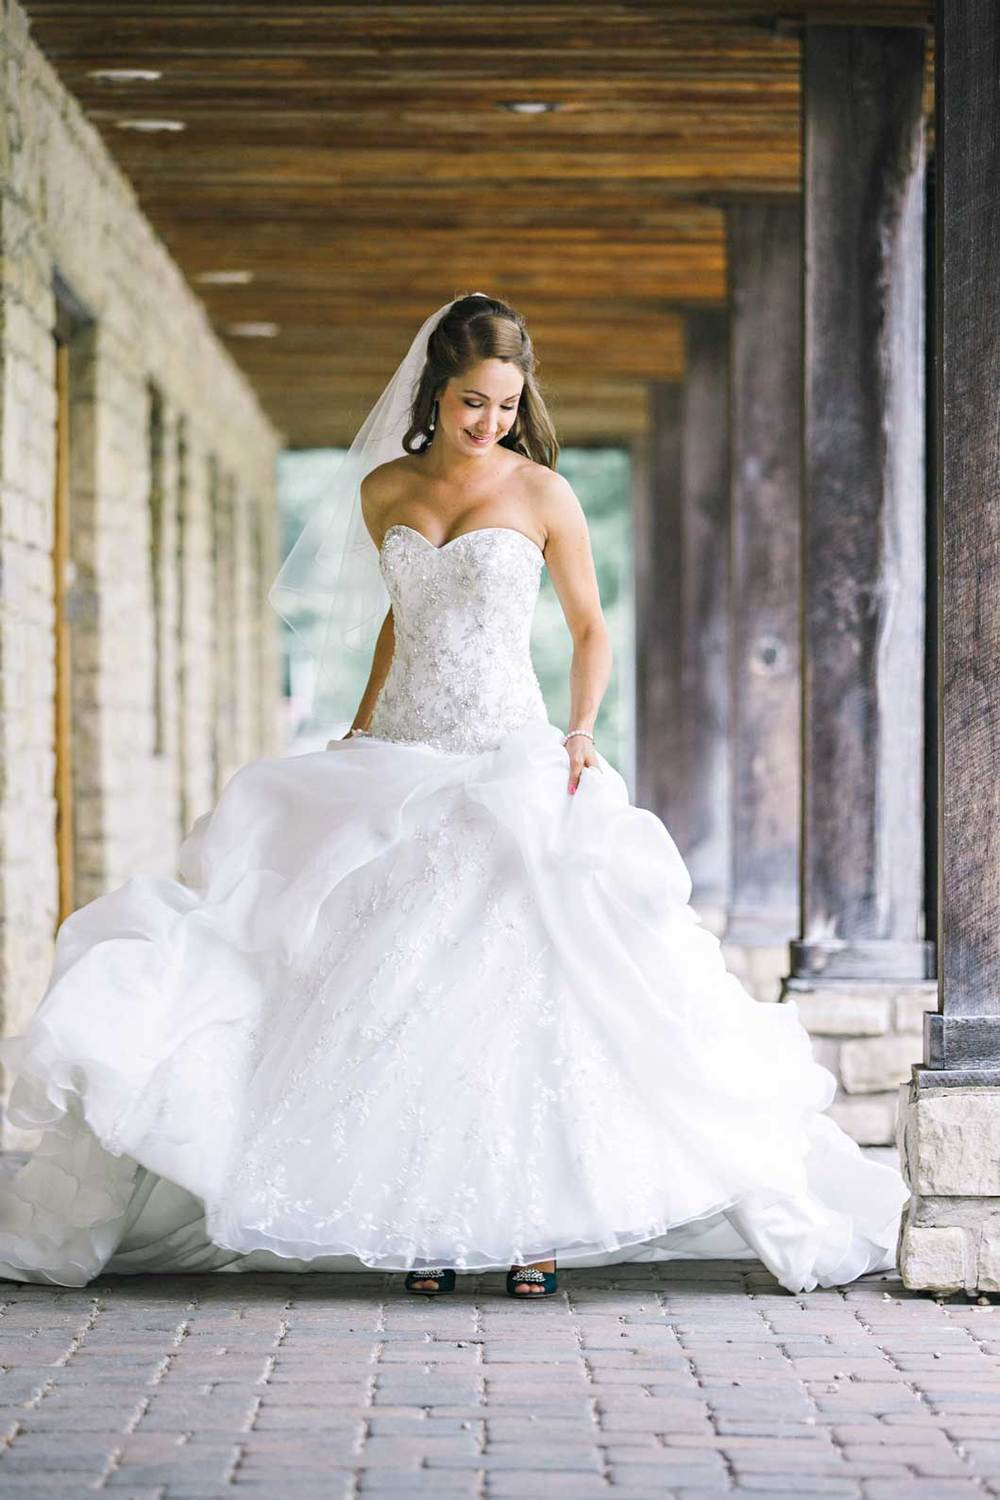 Bride spinning in dress at Liberty Presbyterian Church in Powell, Ohio